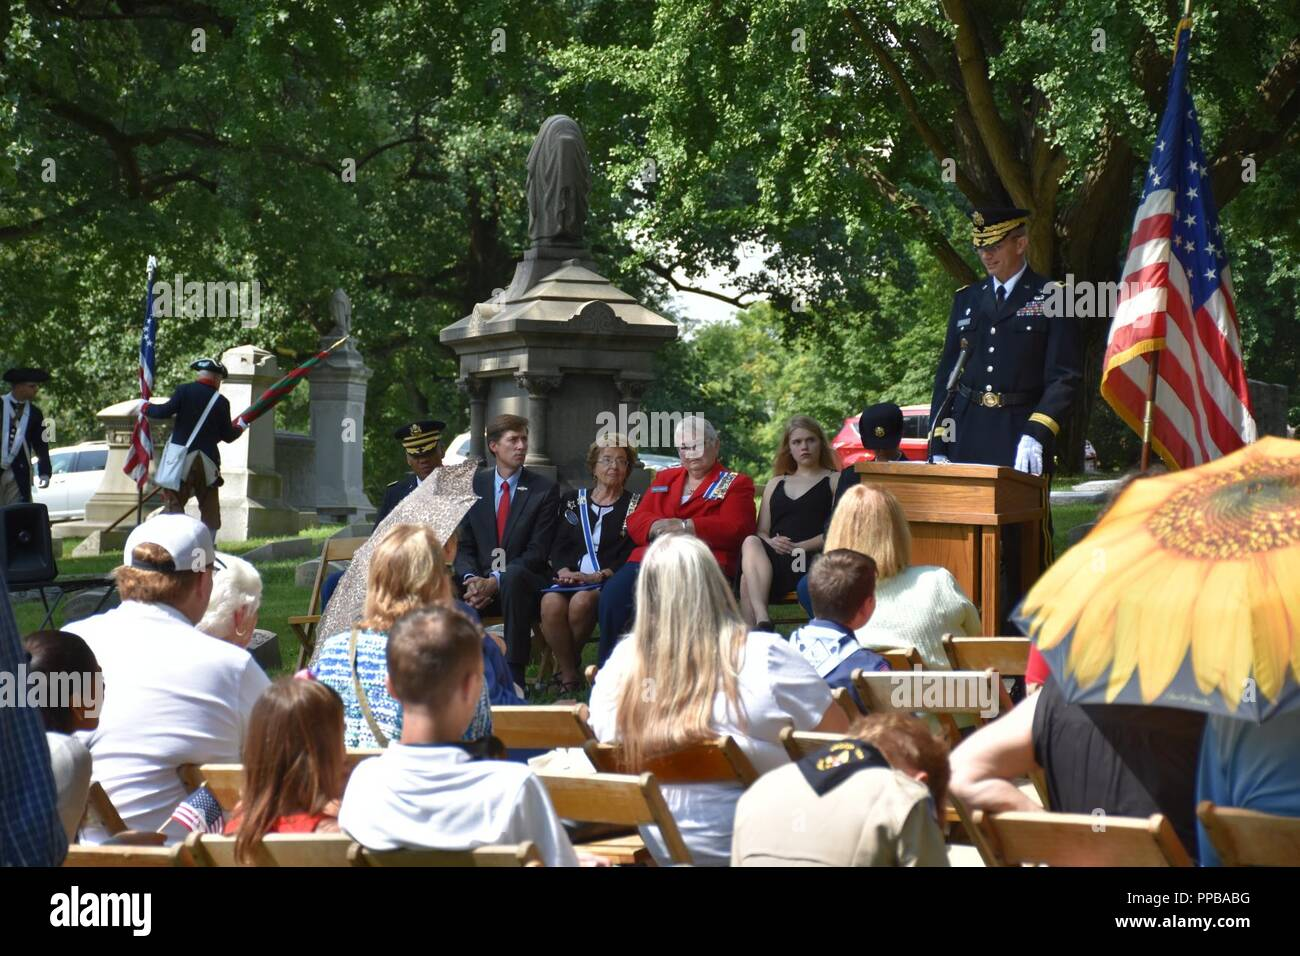 Brigadier Gen. Tony L. Wright, 88th Readiness Division deputy commanding general, addresses the audience during at a wreath laying ceremony for President Benjamin Harrison at Crown Hill Cemetery, in Indianapolis, on Aug. 18, to commemorate the Hoosier President's 185th birthday. (US Army Stock Photo